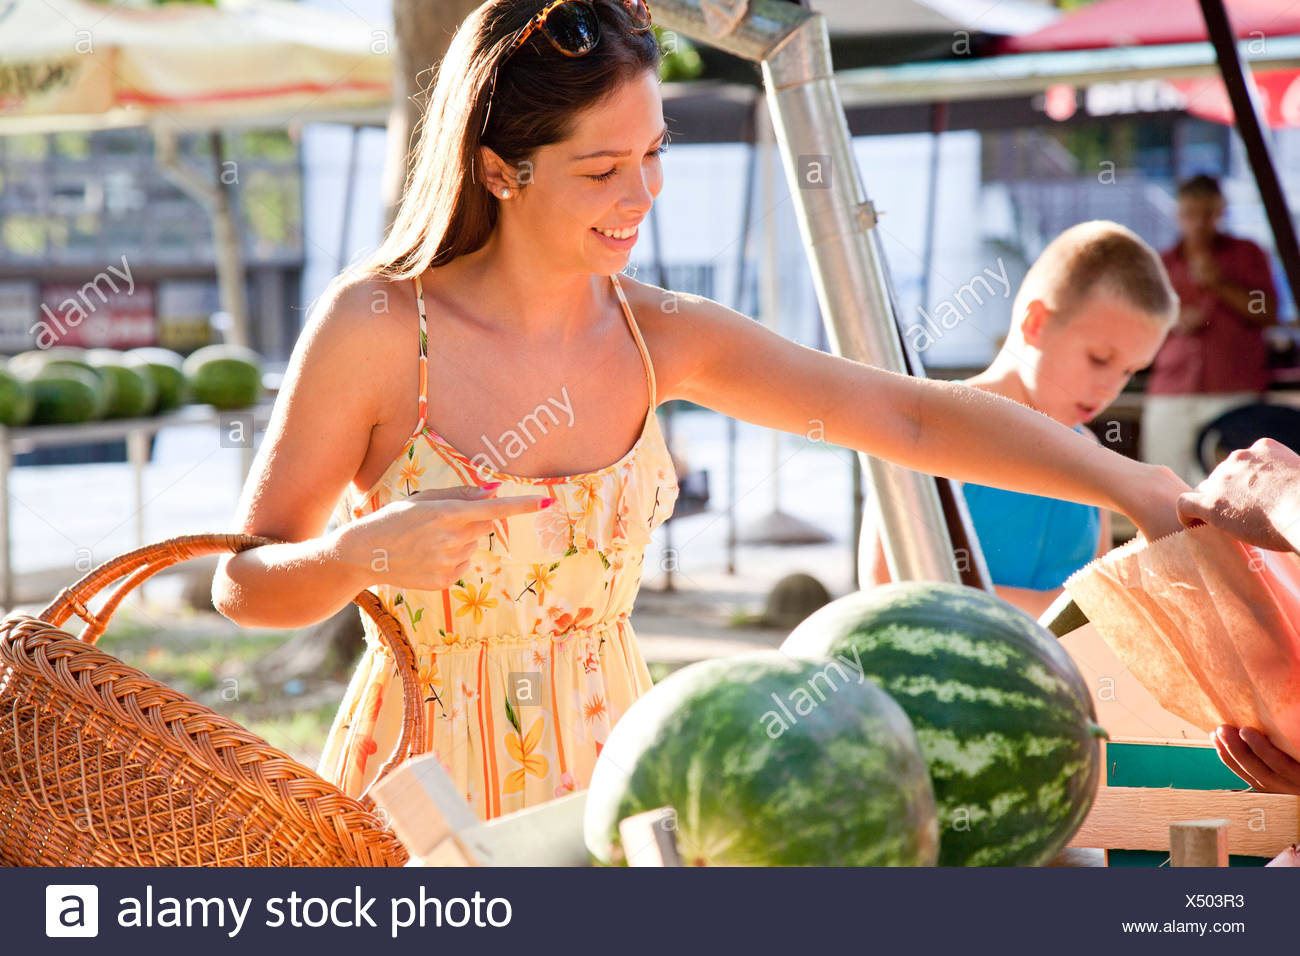 Young woman buying vegetables at market stall - Stock Image